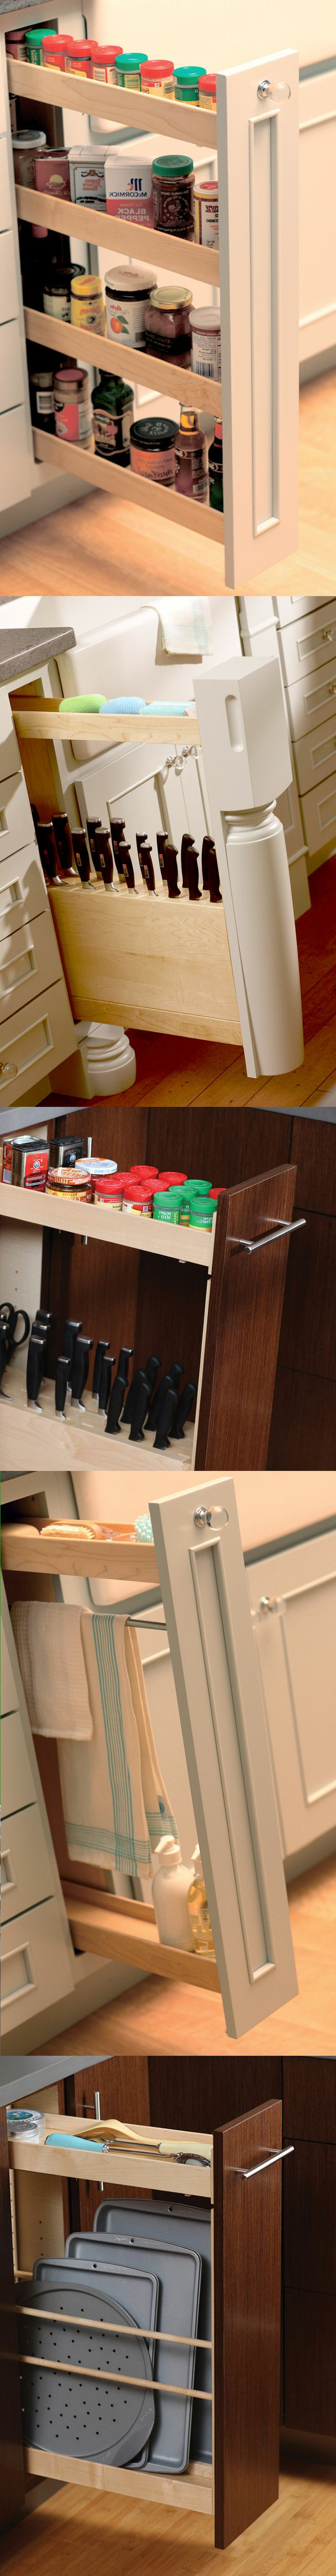 Thin #cabinet #storage ideas and accessories for small spaces and #kitchens - Dura Supreme #Cabinetry